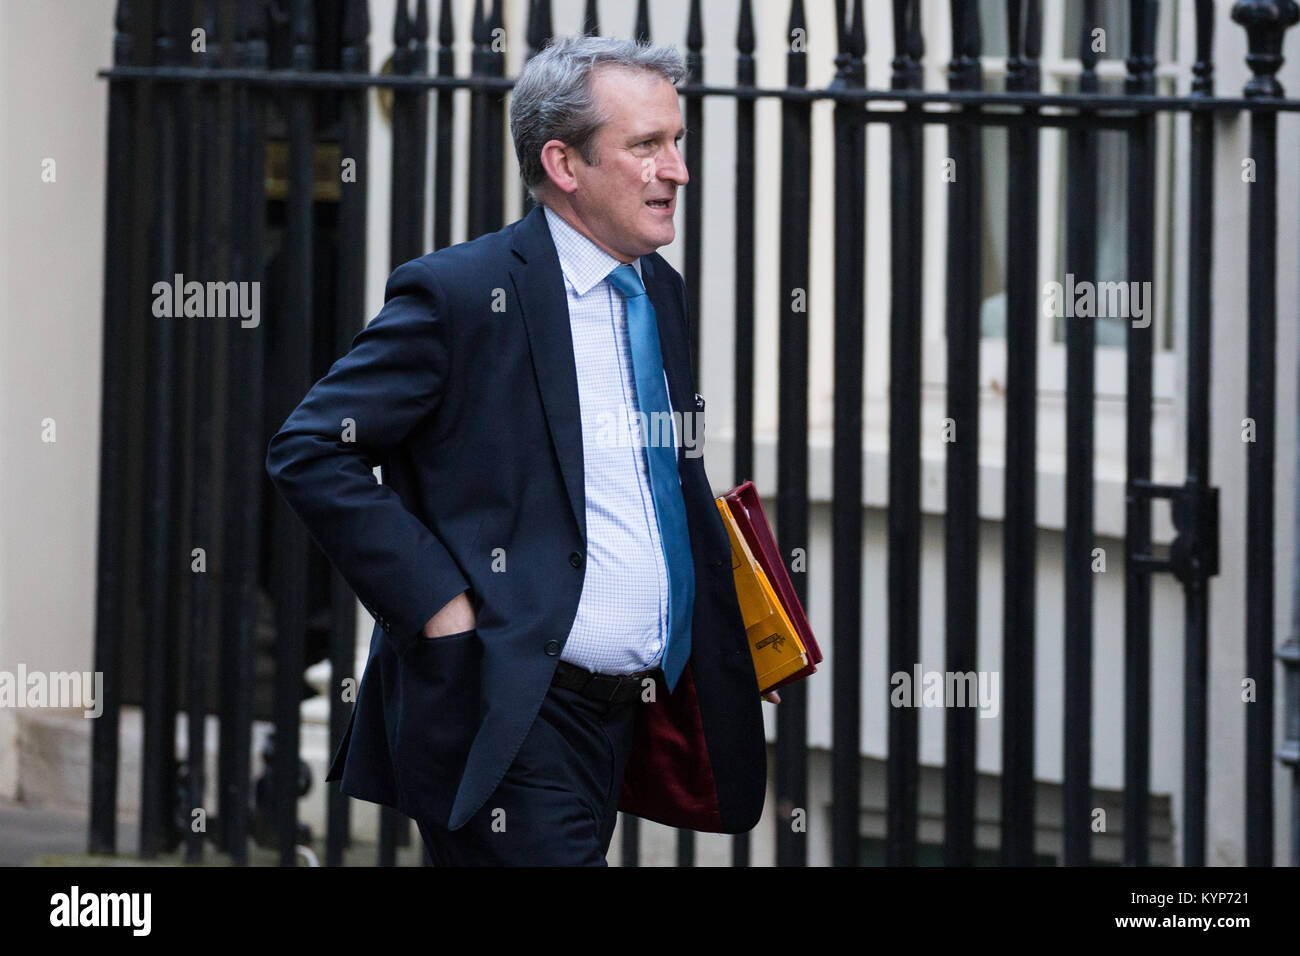 London, UK. 16th Jan, 2018. Damian Hinds MP, Secretary of State for Education, arrives at 10 Downing Street for - Stock Image